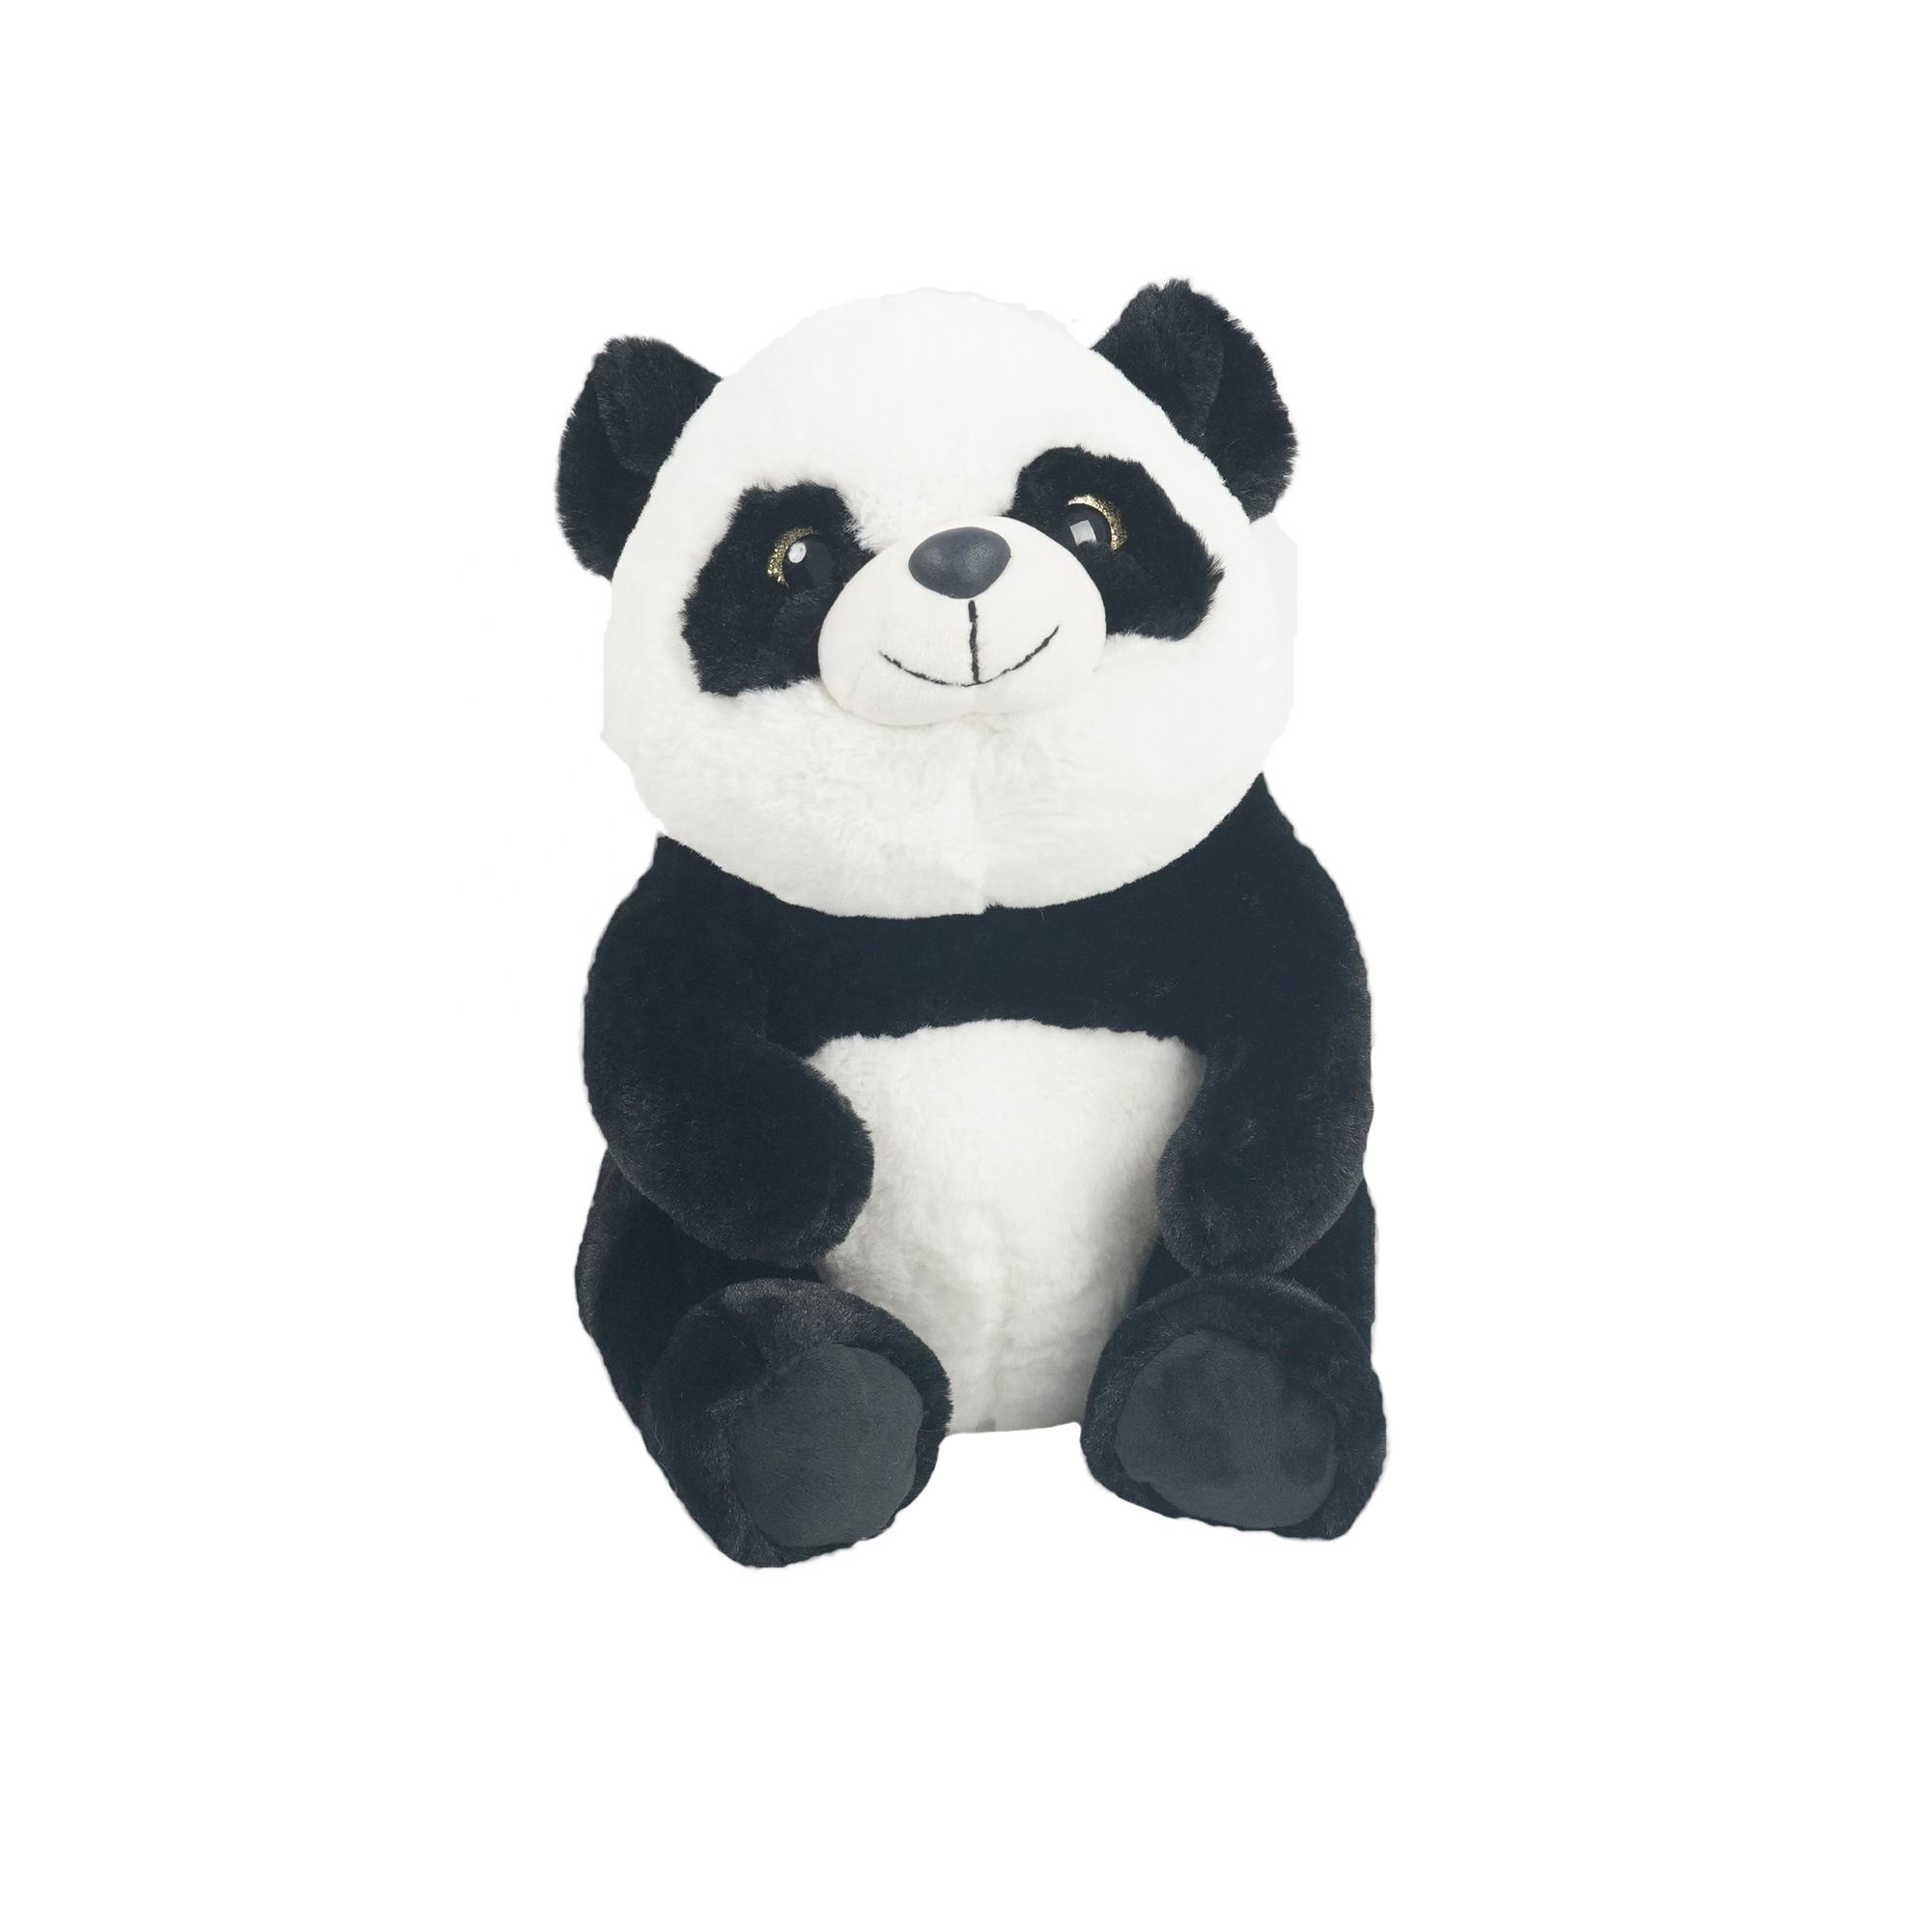 Hot Sale Plush Panda Teddy Bear Stuffed Animal Classic White and Black Soft Plush Bear Toy